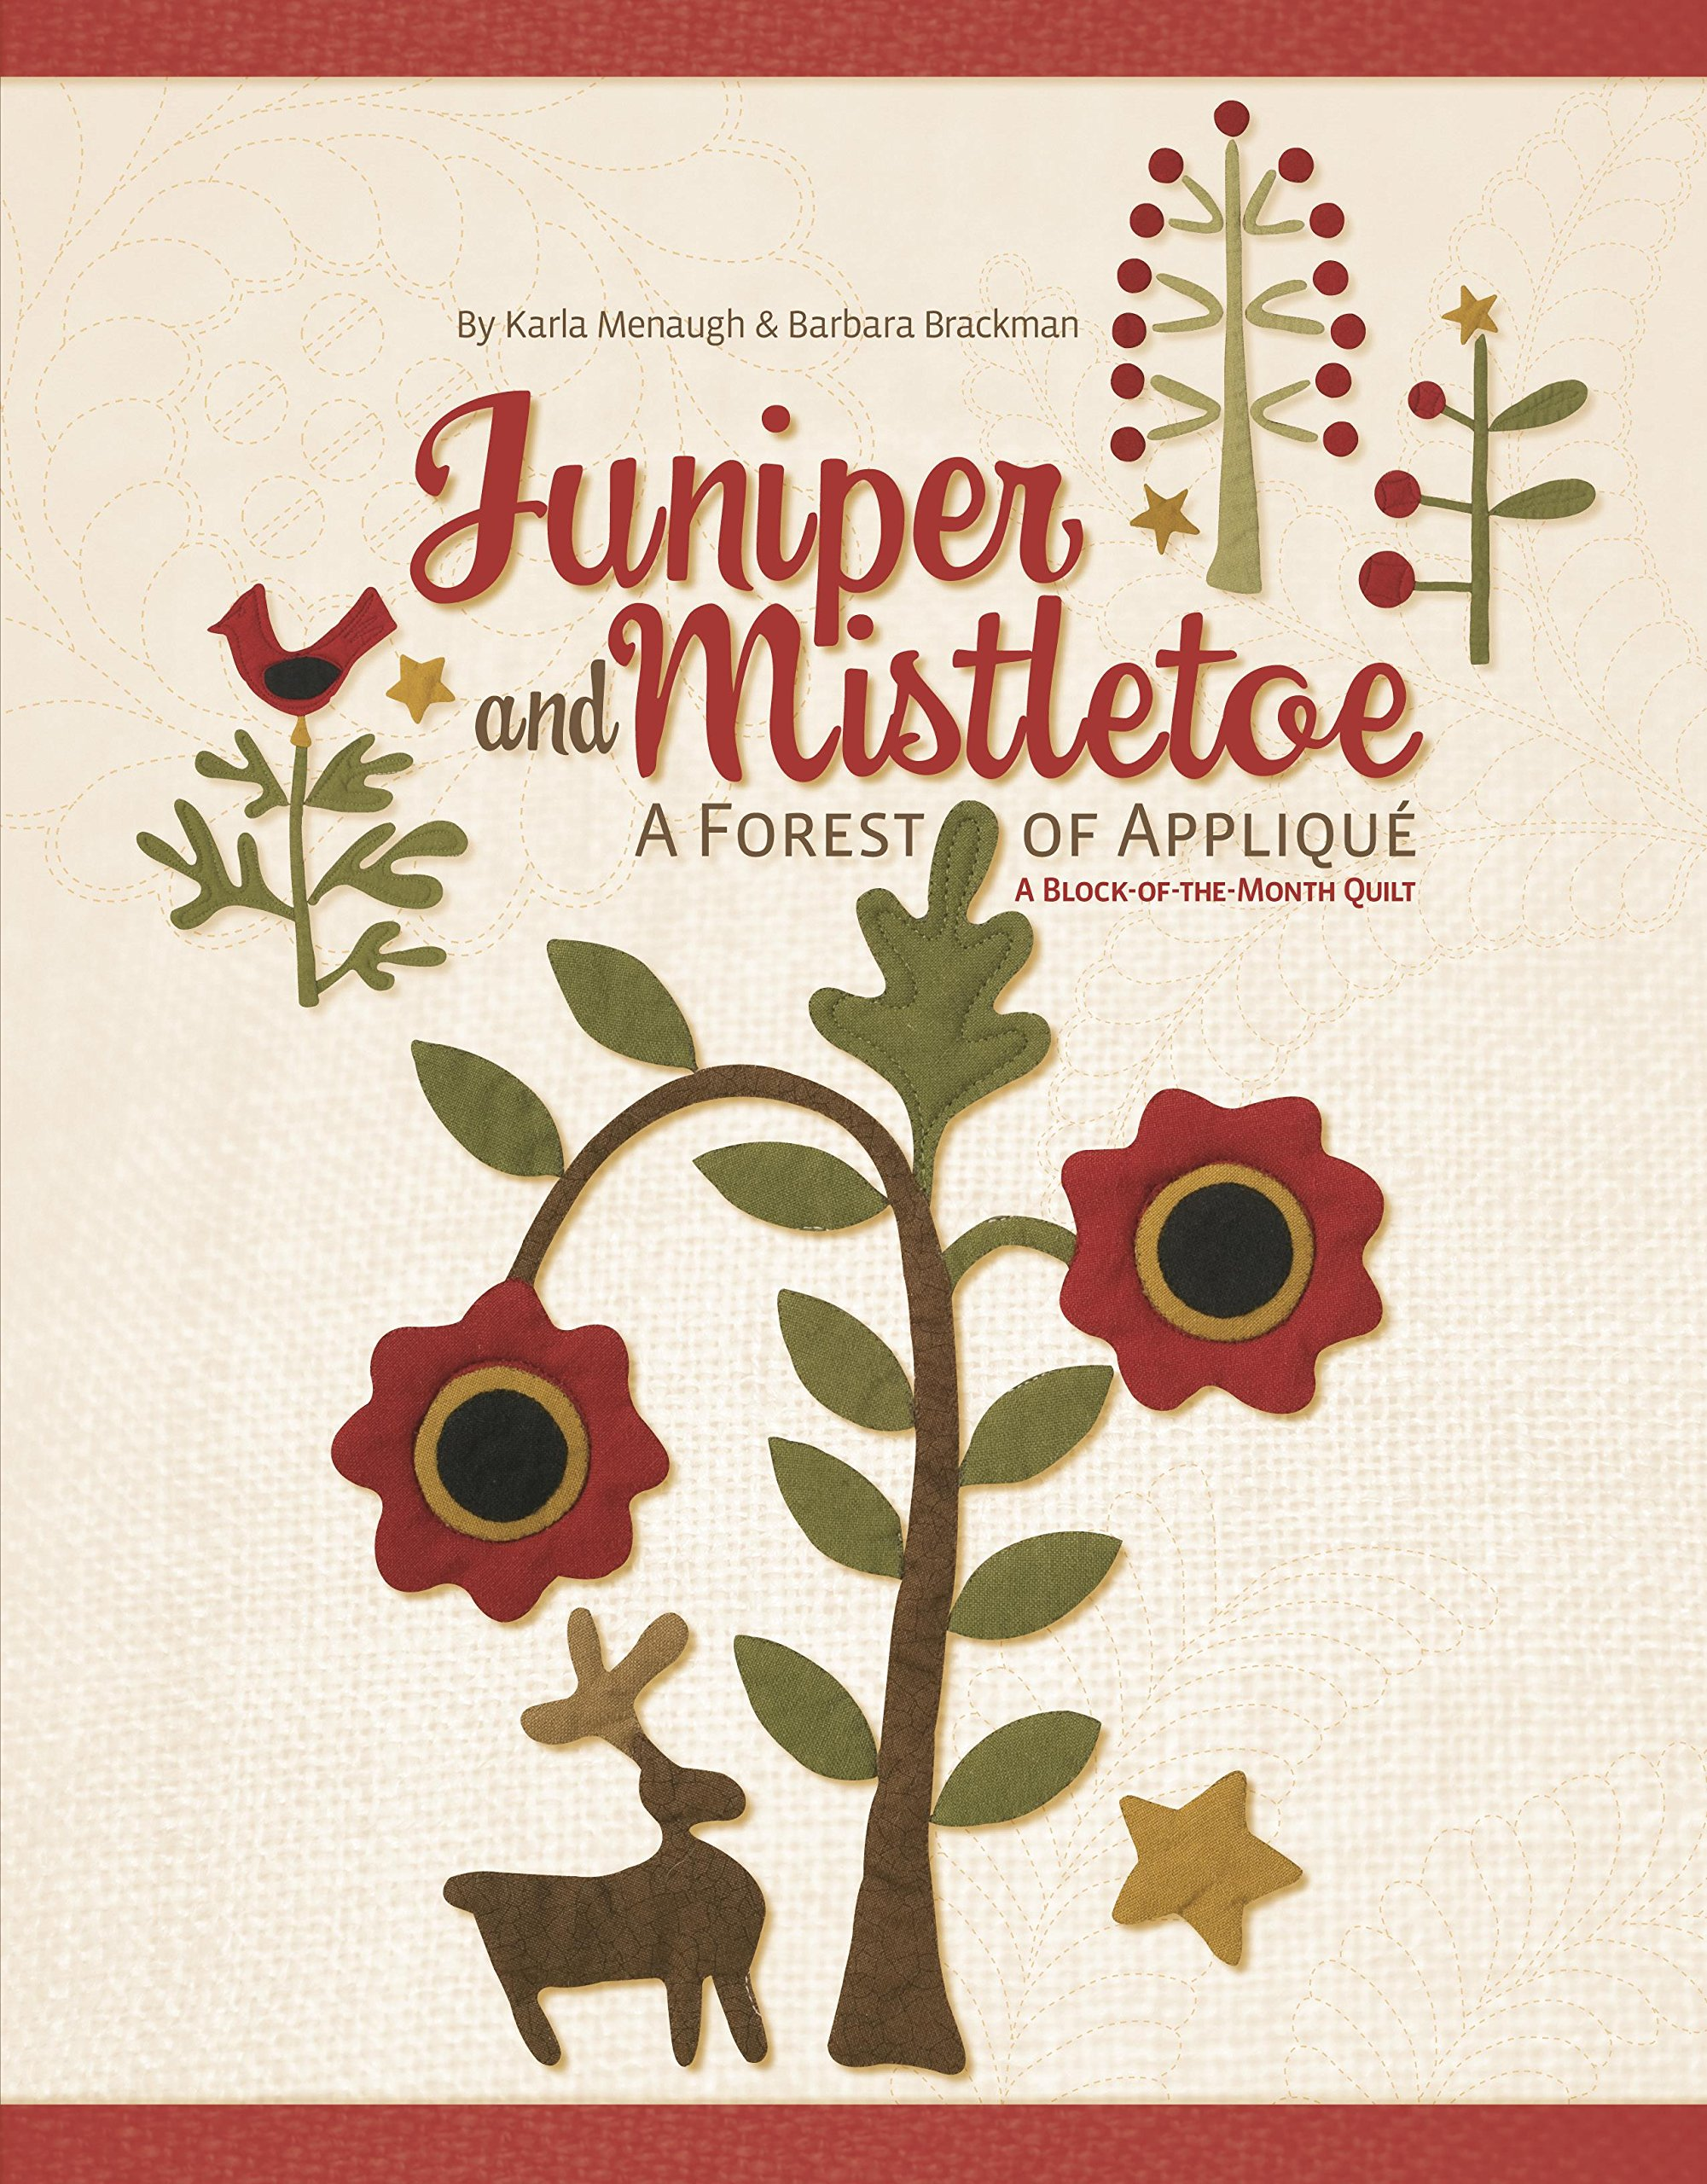 Juniper and Mistletoe: A Forest of Applique